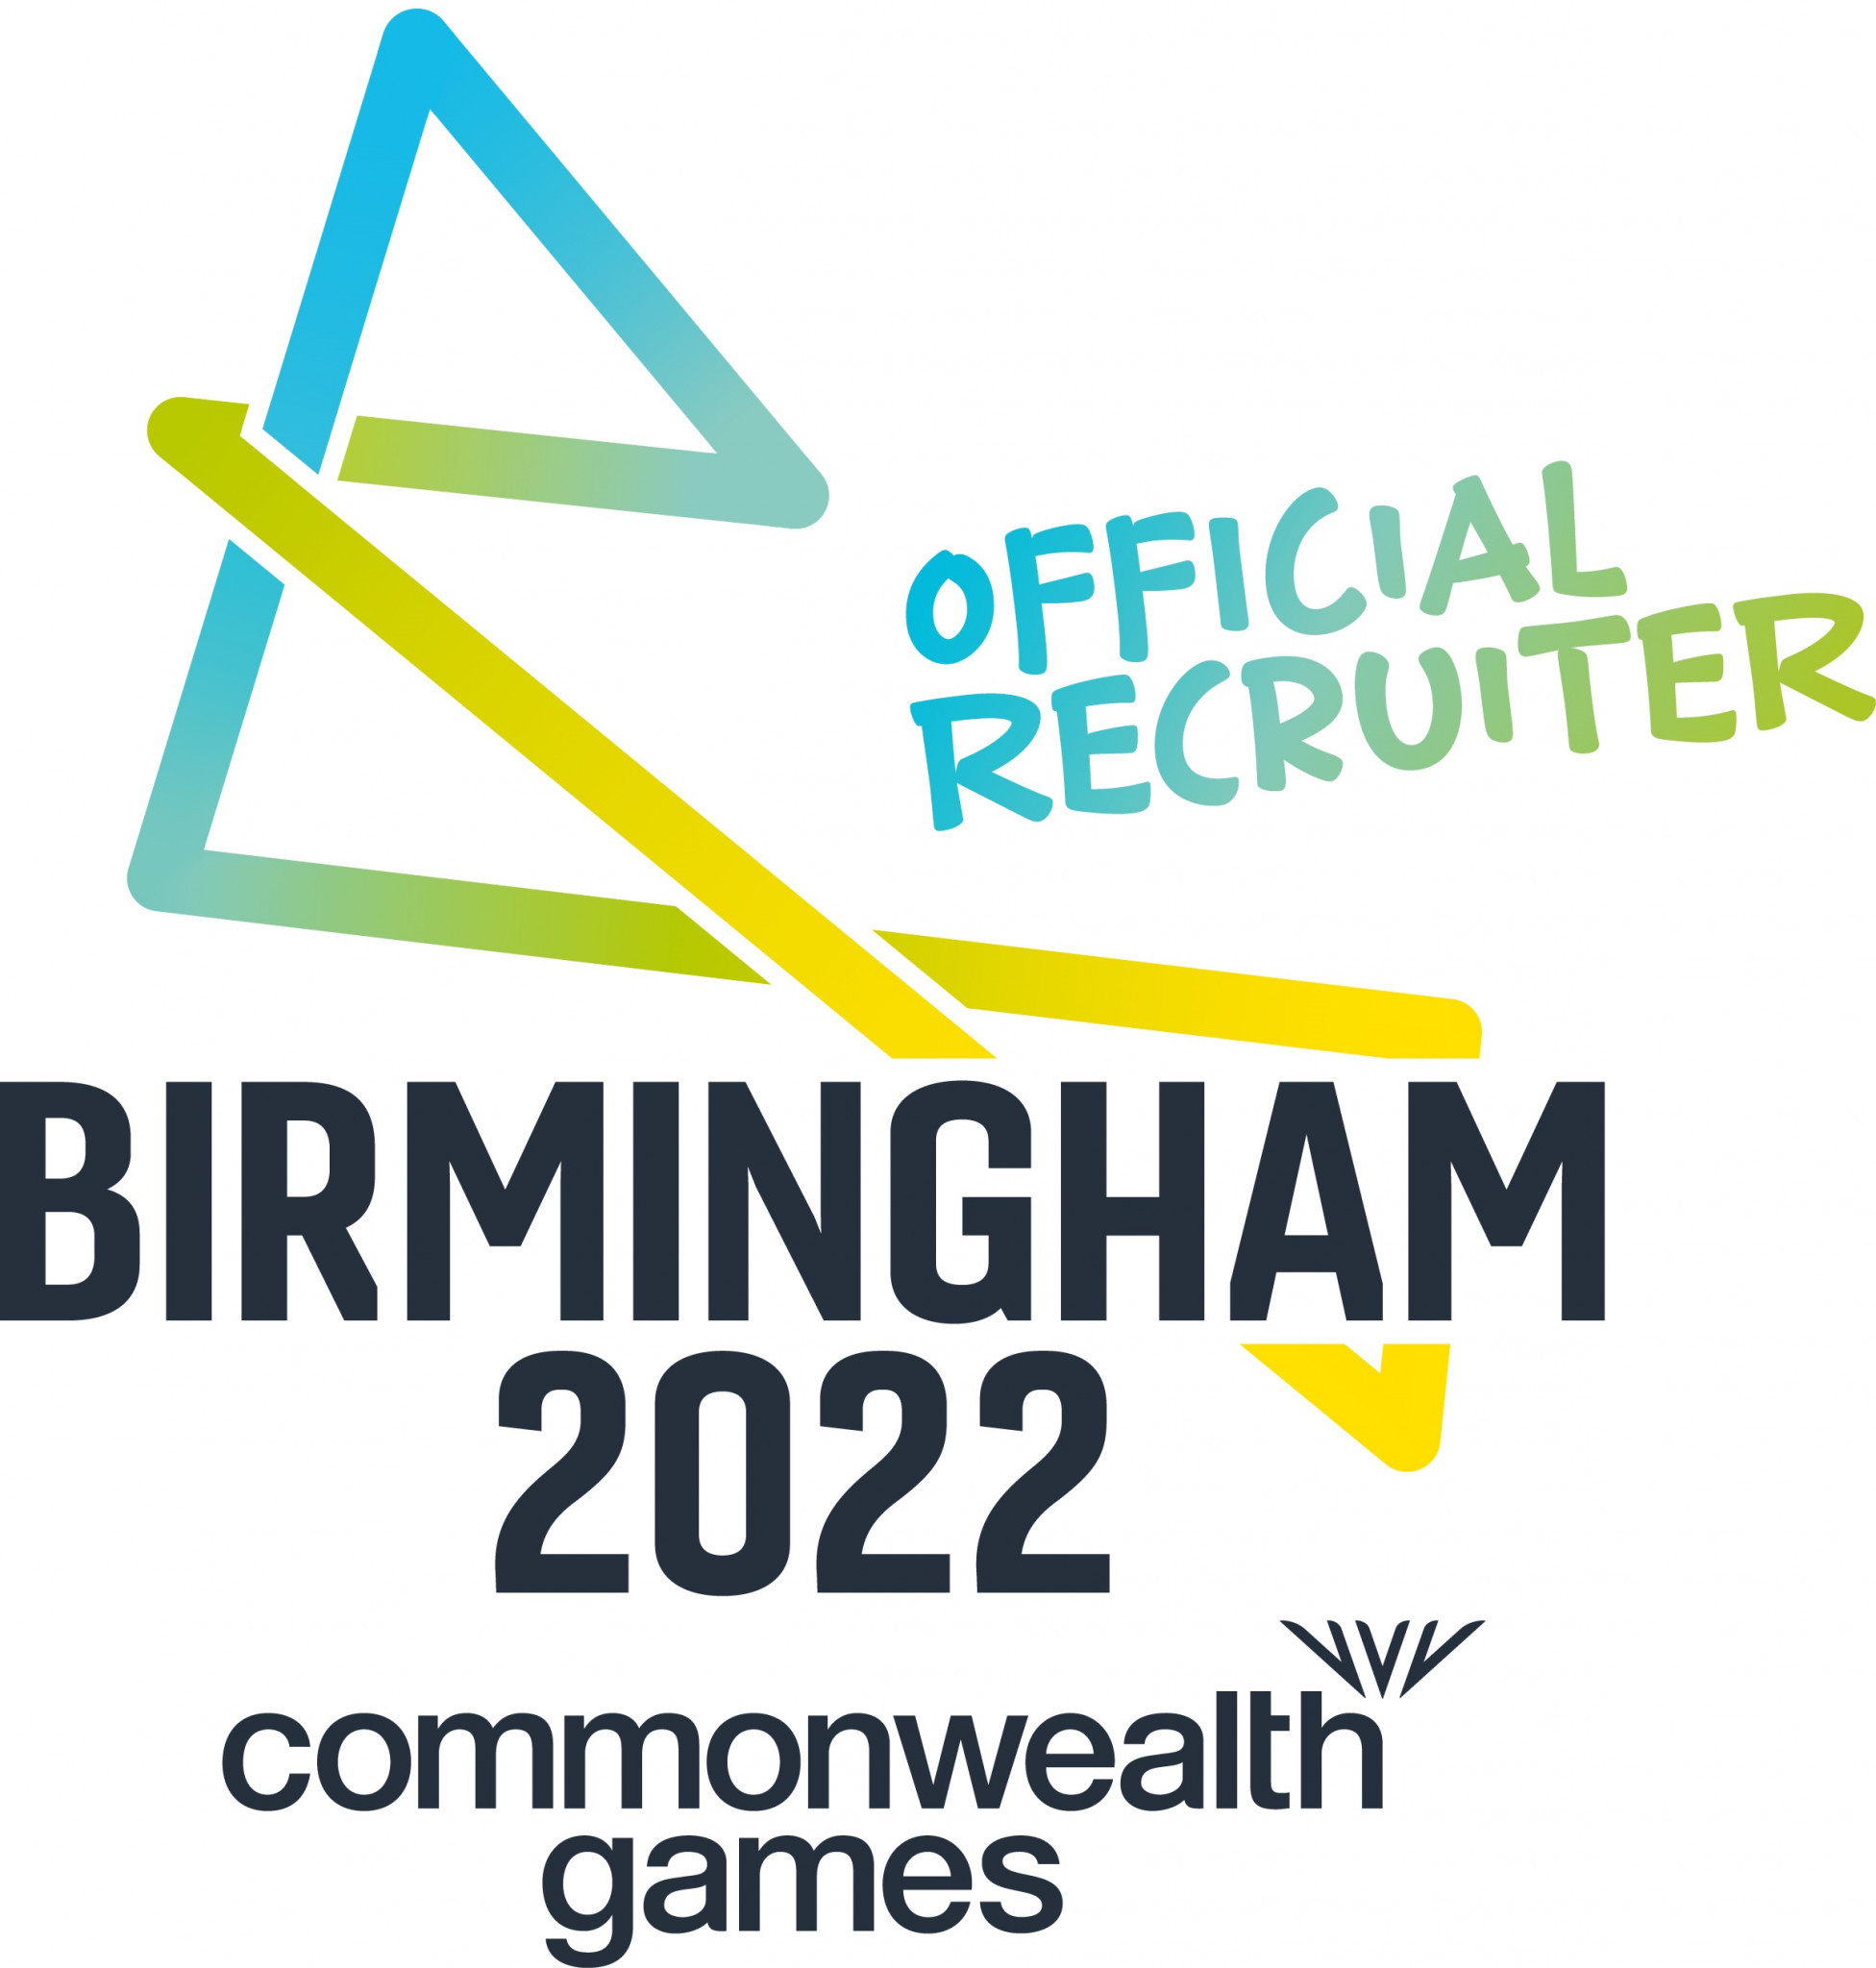 Programme launched to help local people get jobs created by Birmingham 2022